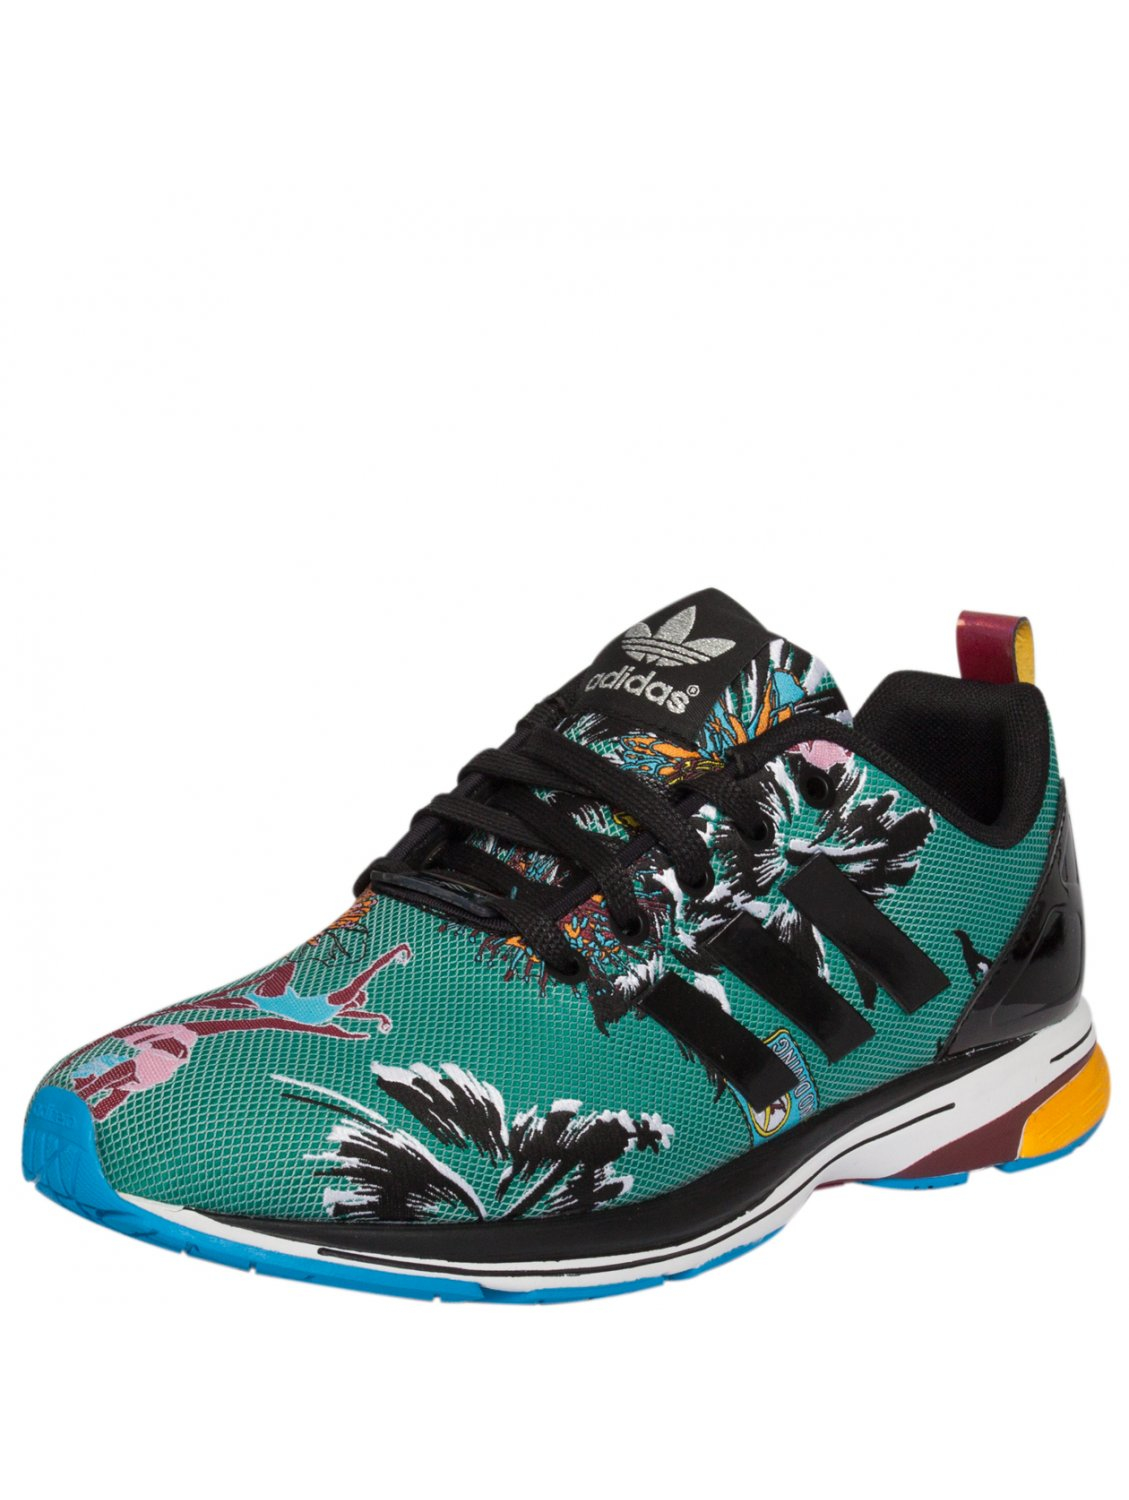 separation shoes c5368 1e10a adidas Originals Mk Zx Flux Tech Sneakers Green in Green - L